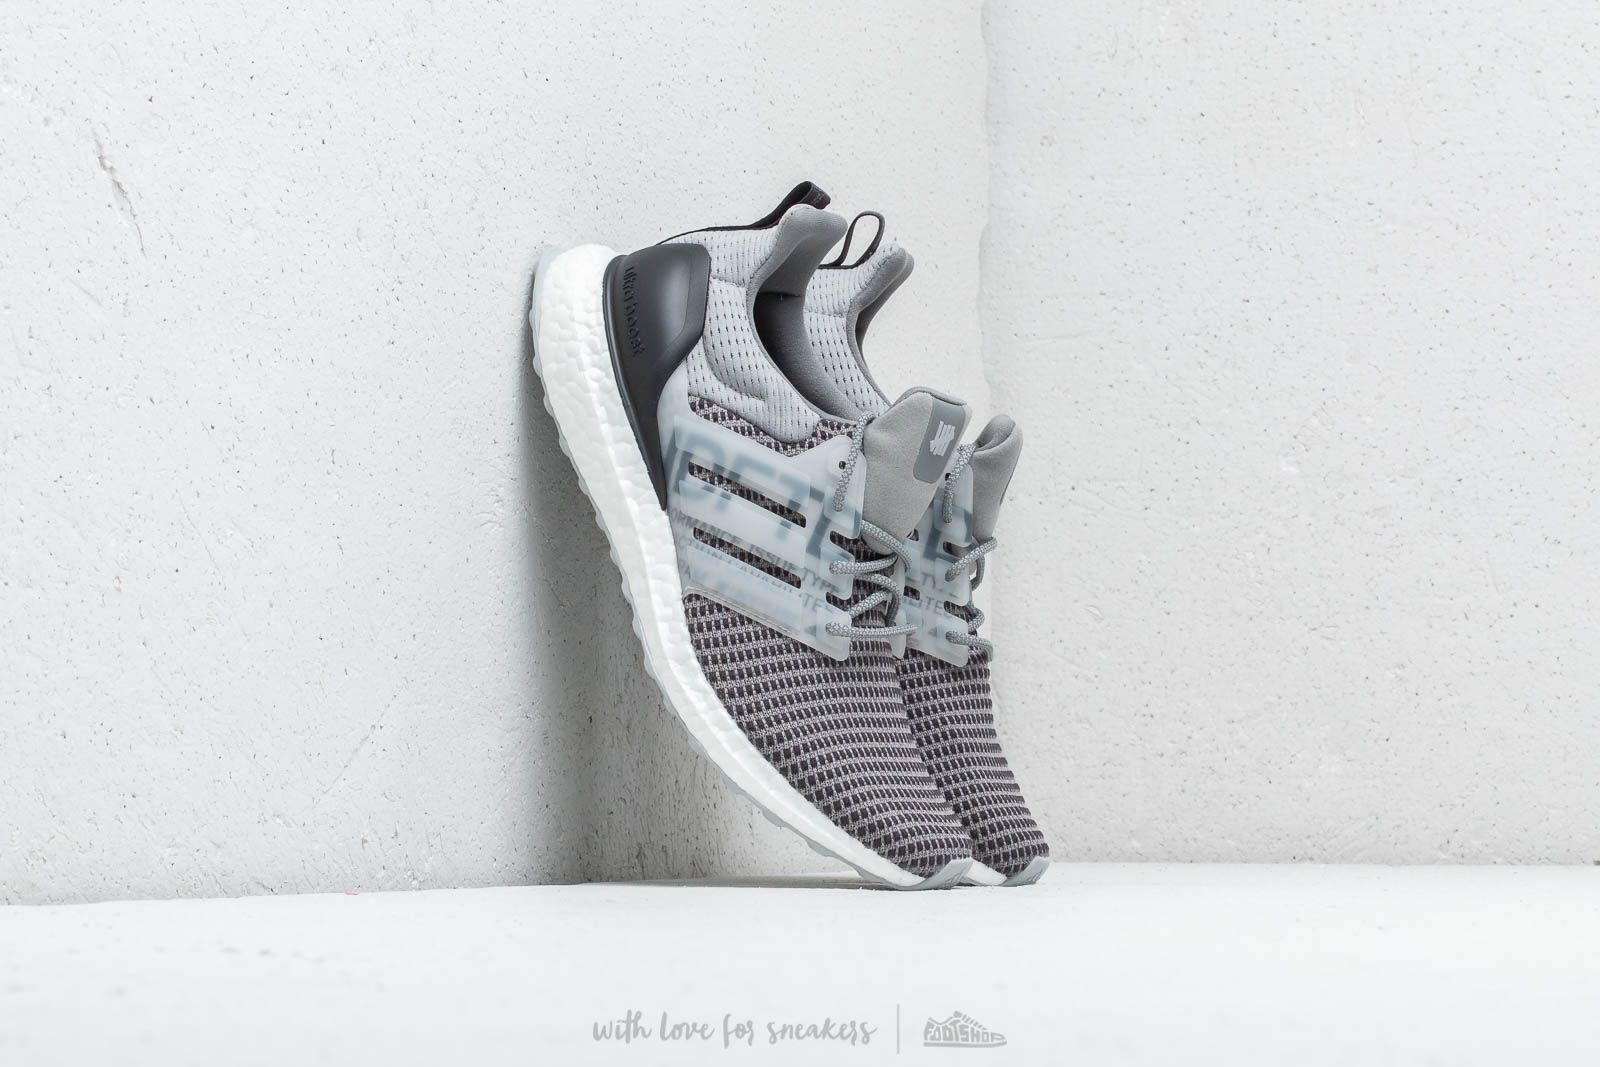 7bc66f30865a6 adidas x Undefeated UltraBOOST Clear Onix  Clear Onix  Clear Onix at a  great price